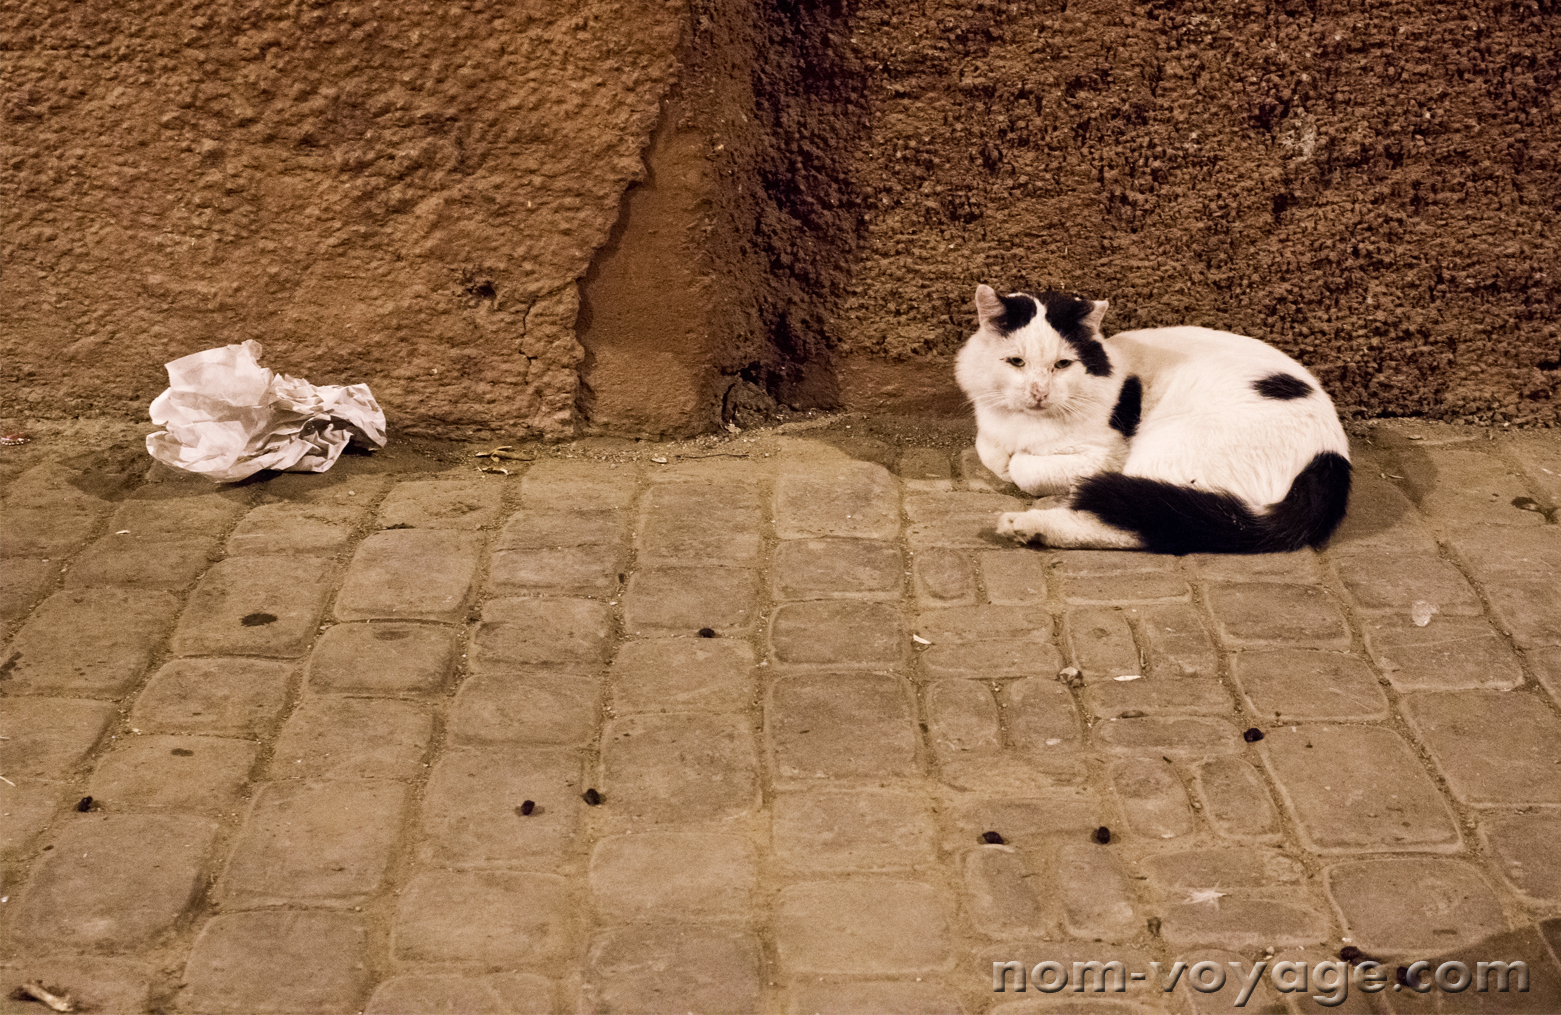 This guy was just hanging out in an alley in the Medina of Marrakech. He really liked cat treats.